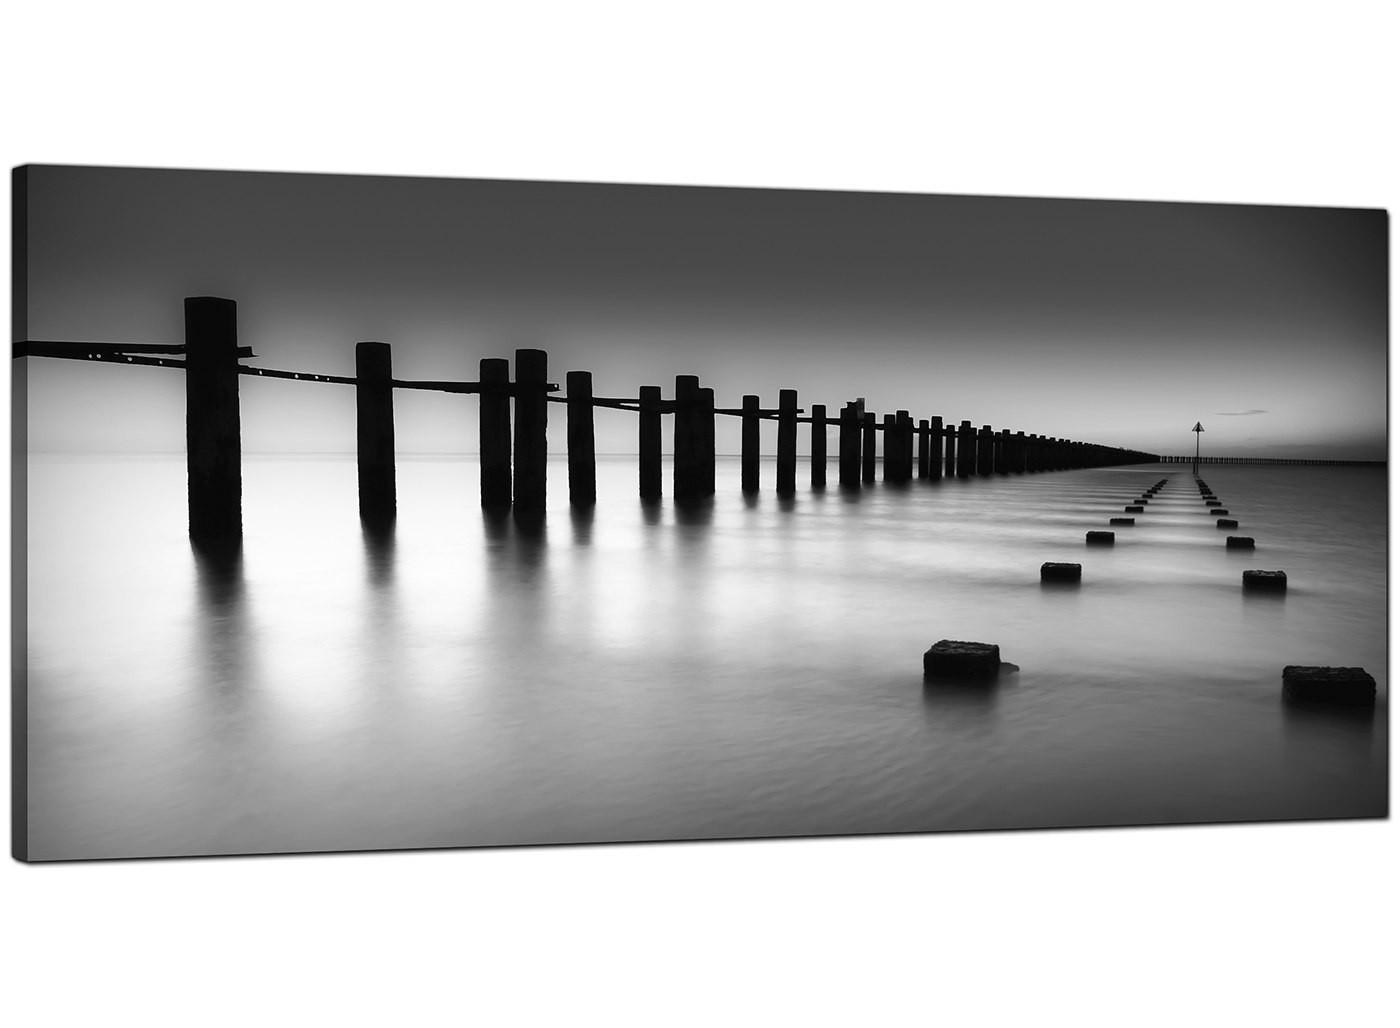 Modern Black And White Canvas Art Of The Sea With Regard To Large Black And White Wall Art (View 5 of 20)